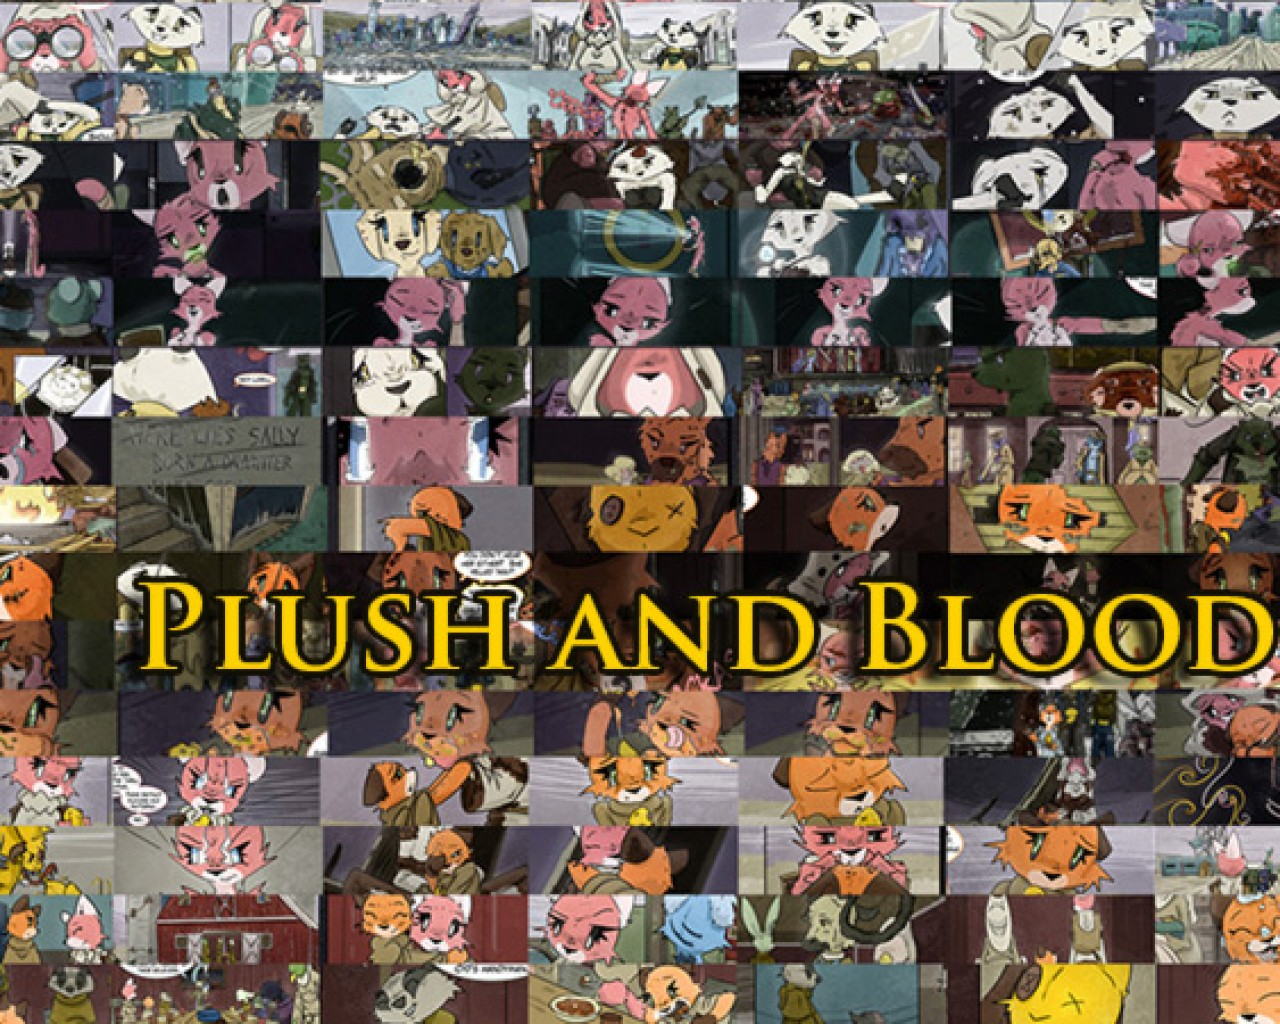 Poster Image for Plush and Blood